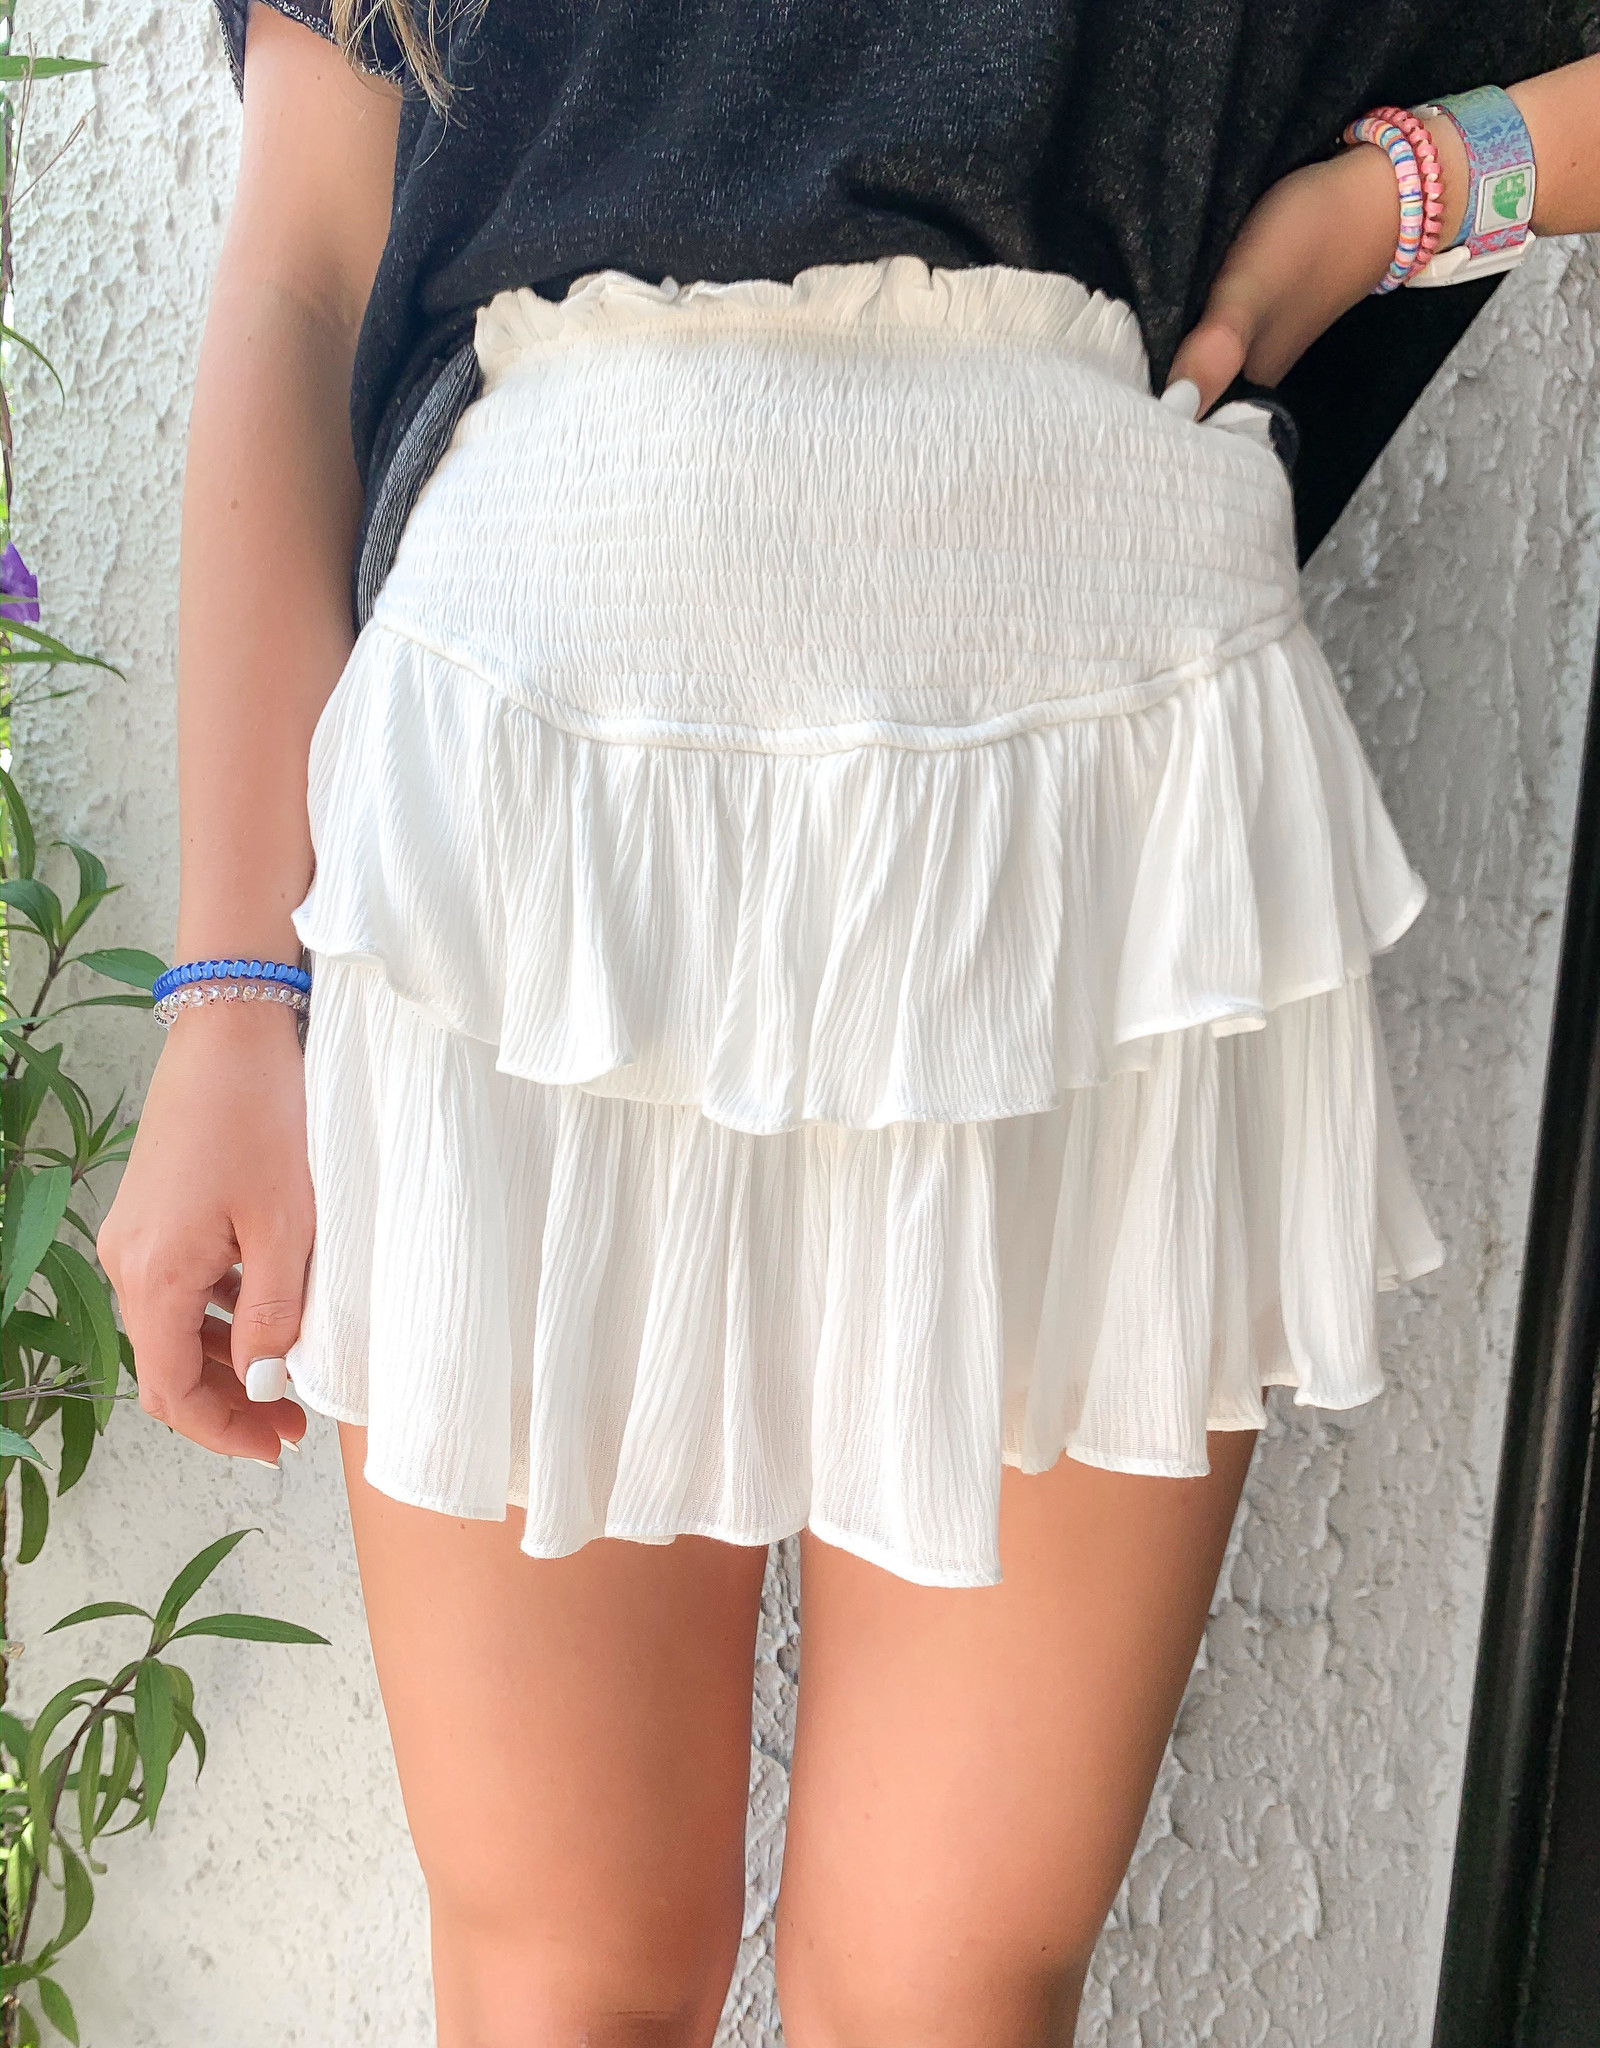 Dusty Ruffle skirt with shorts